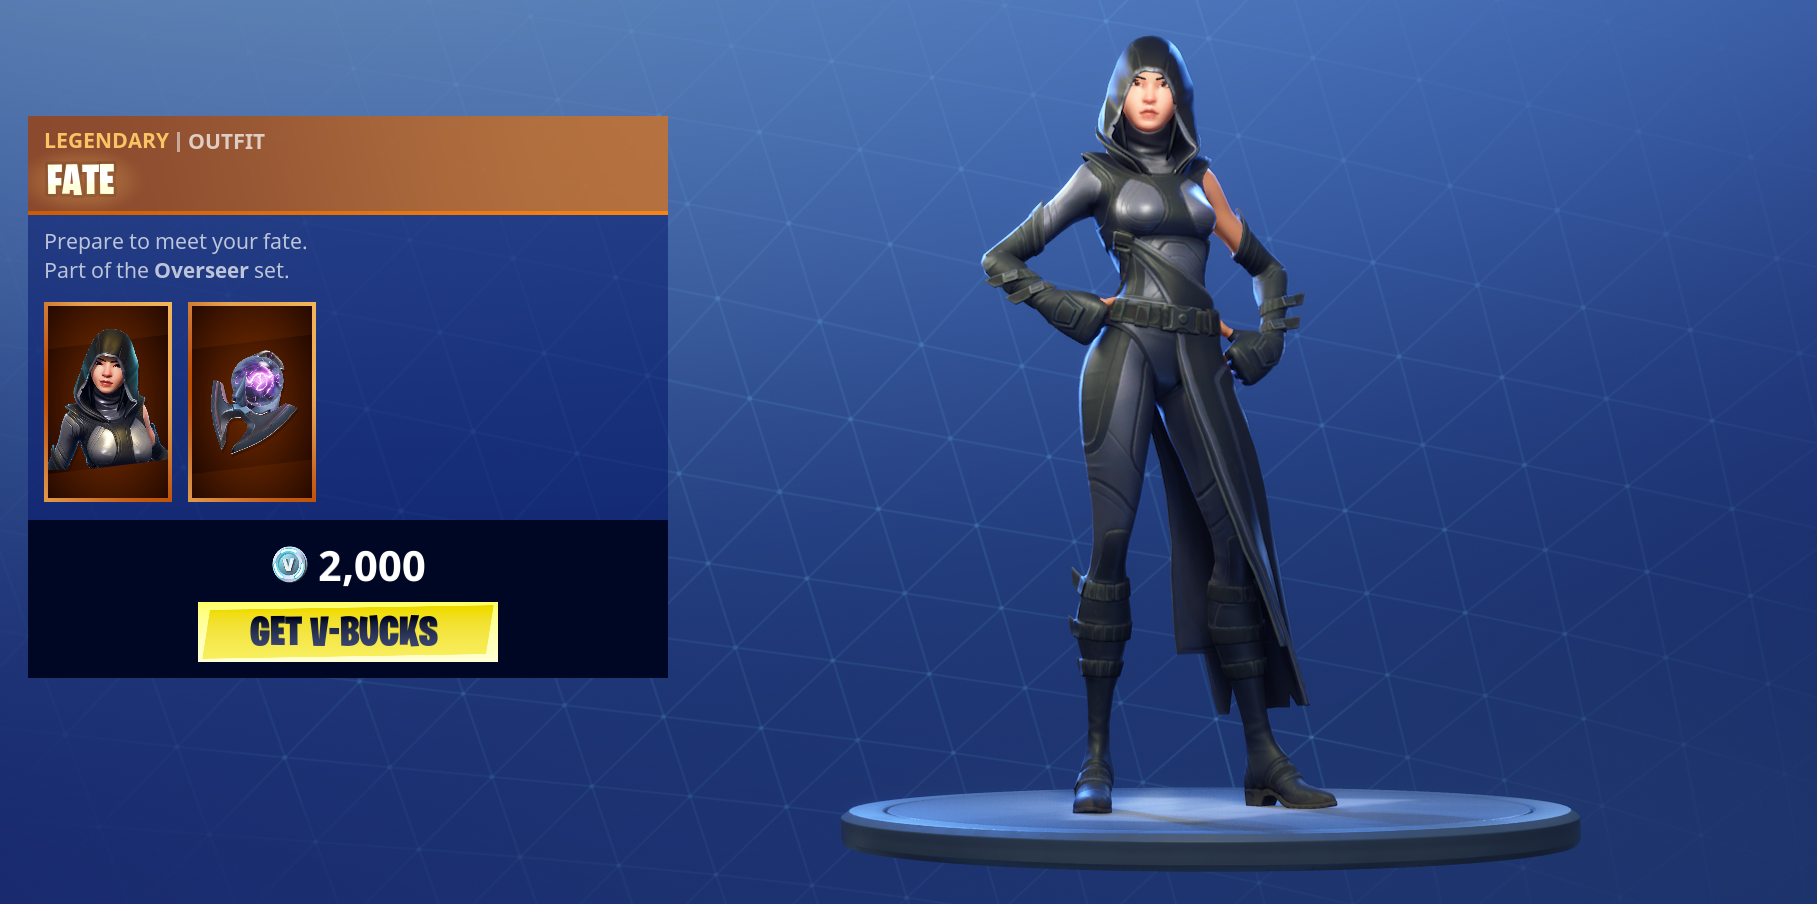 Fate Calls New Skins To Fortnite With The Overseer Set